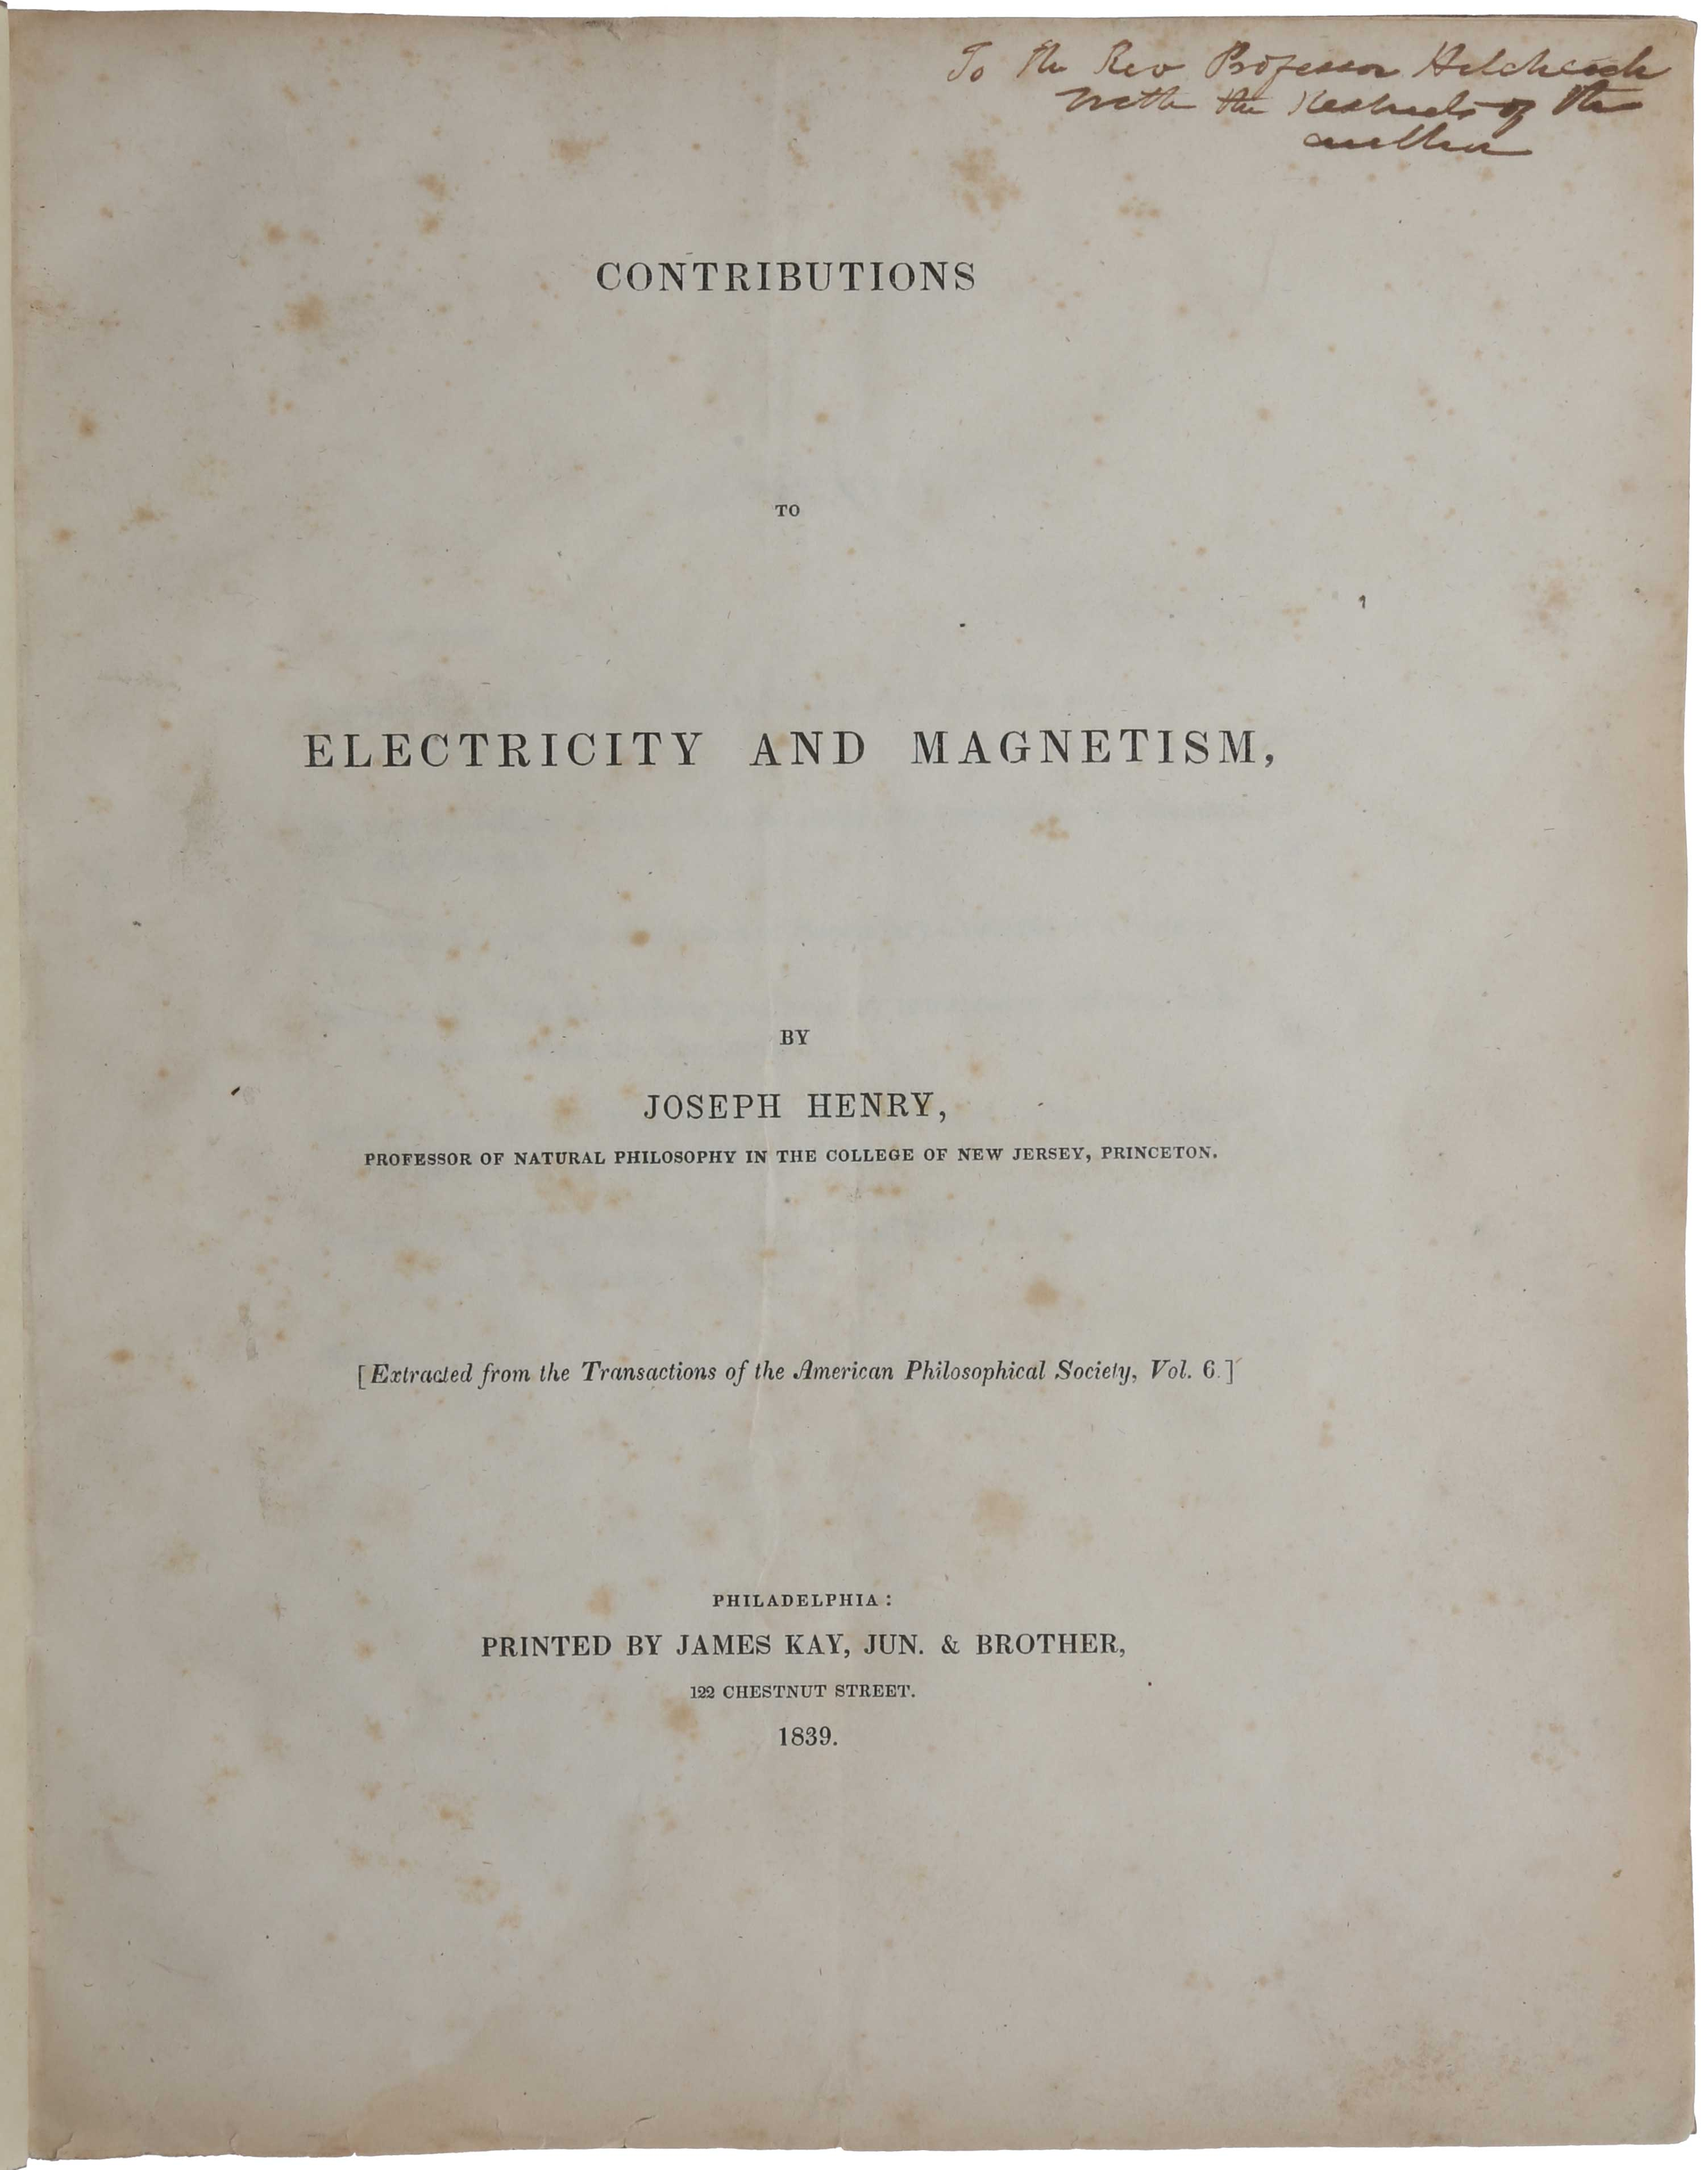 Contributions to Electricity and Magnetism. No. III. - On Electro-Dynamic Induction. Read Novemb. 2, 1838. Extracted [i.e., offprint] from the Transactions of the American Philosophical Society, Vol. 6. Joseph HENRY.